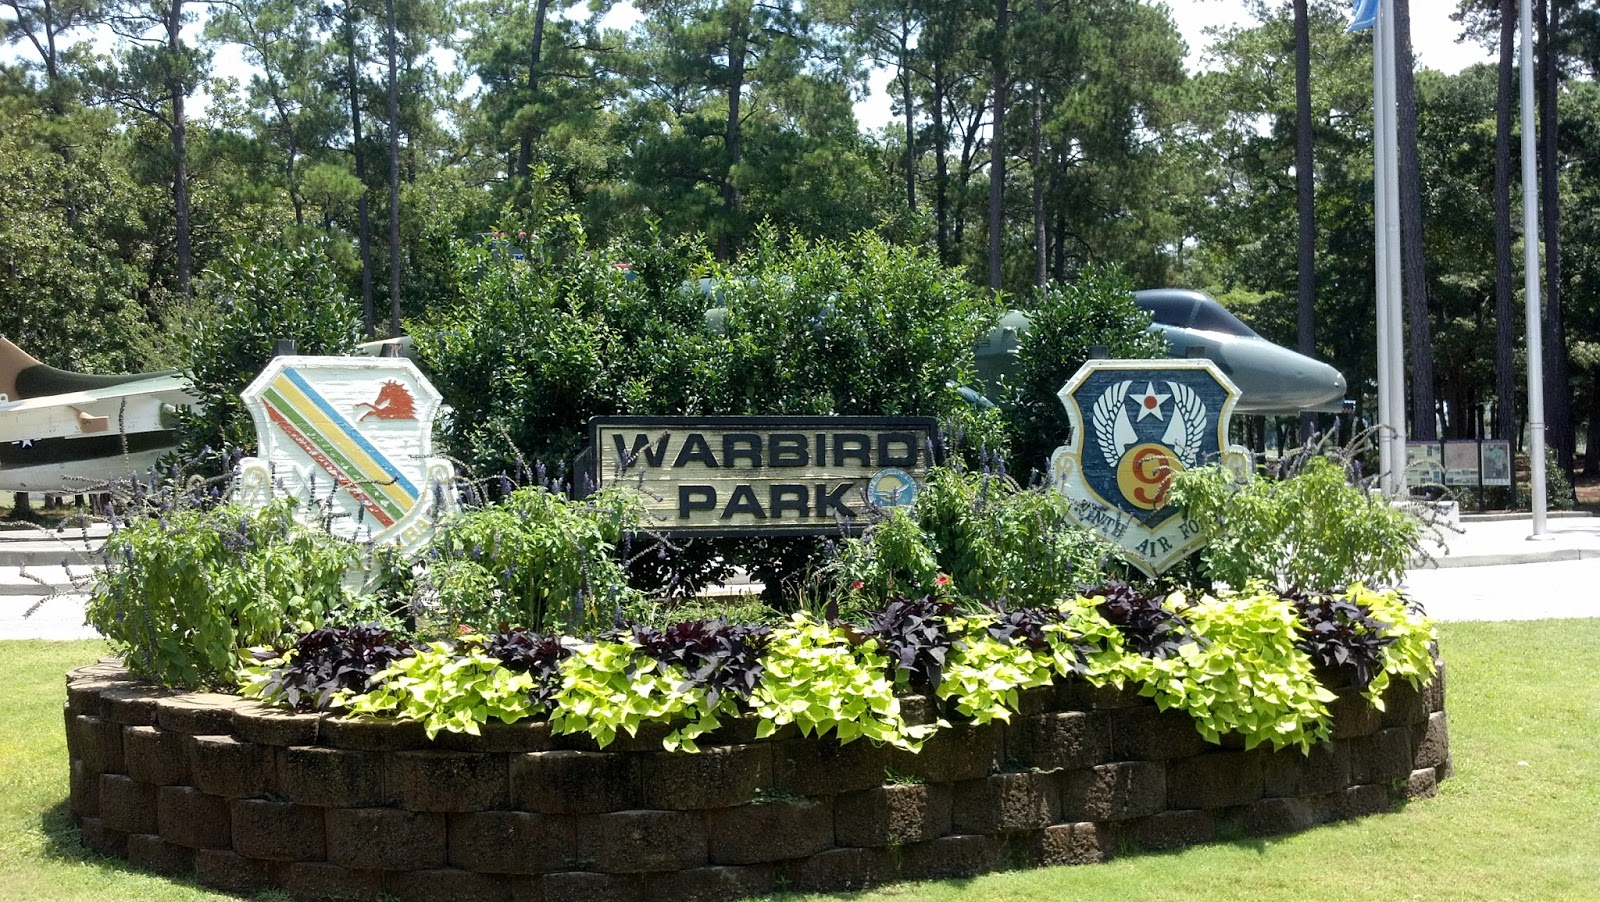 Grand Strand History: Warbird Park, Myrtle Beach, South Carolina